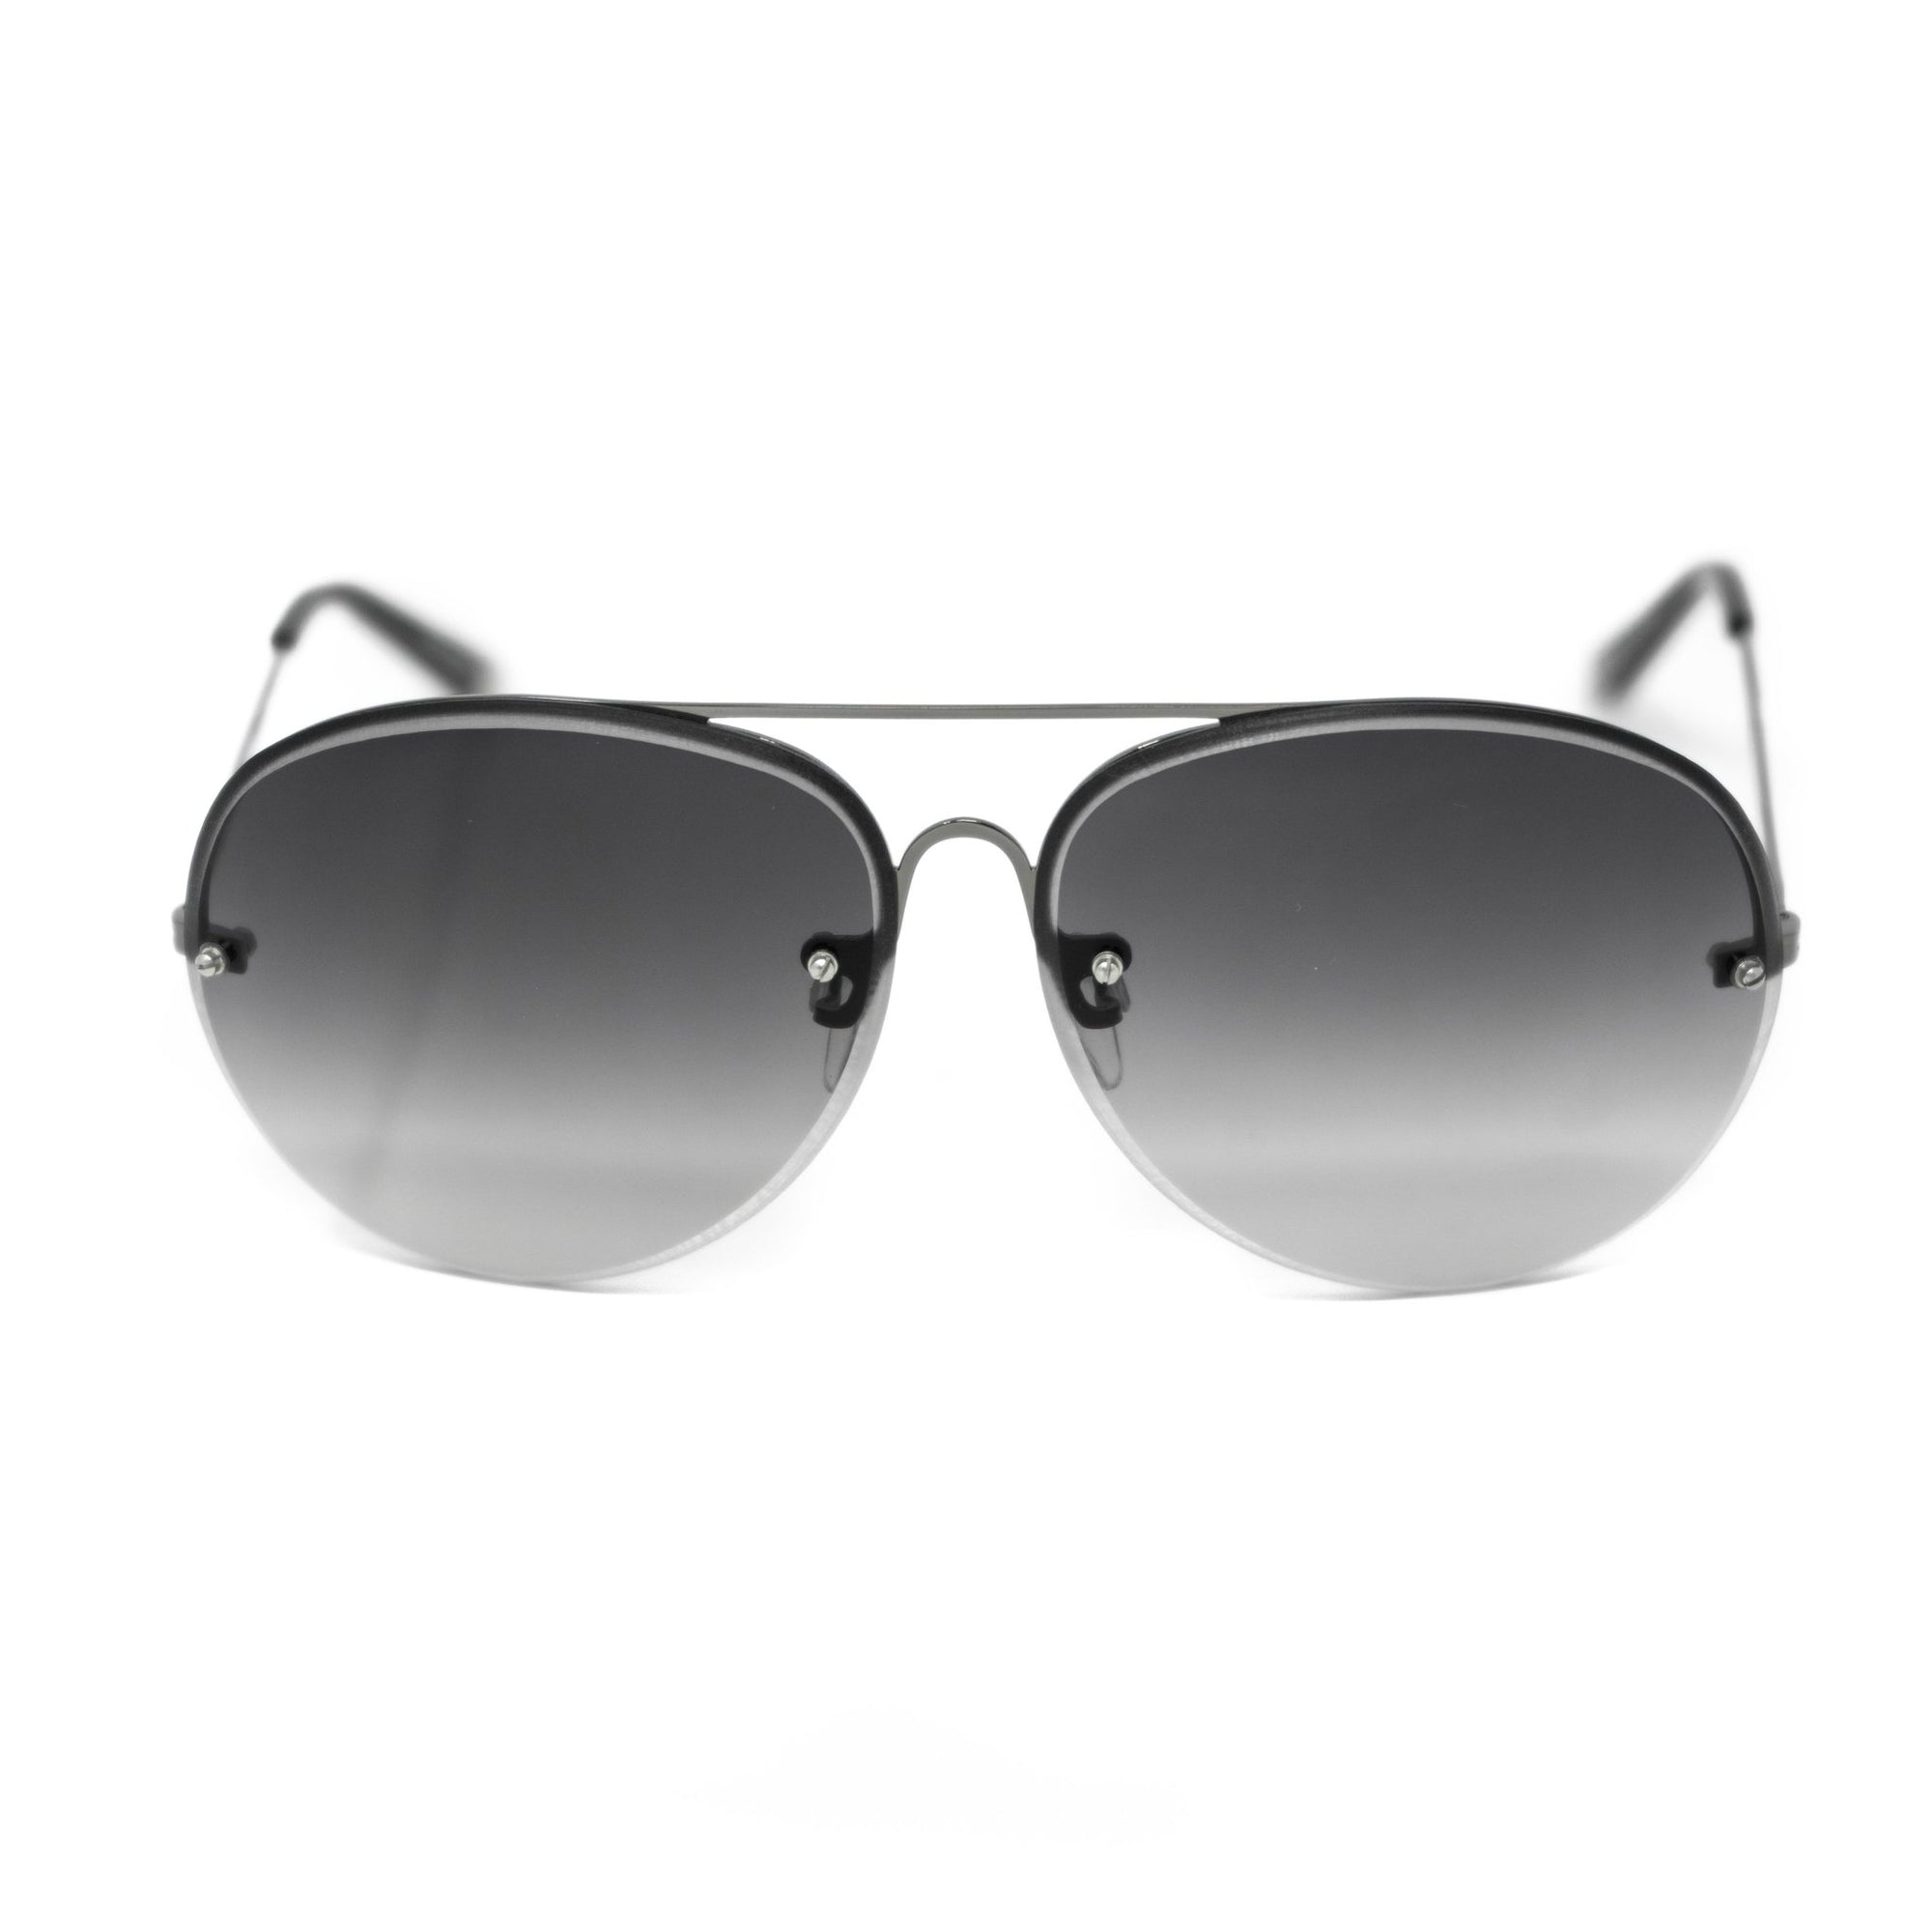 Antonio Berardi Men Sunglasses Gun Metal and Grey Graduated Lenses - AB1C1SUN - Watches & Crystals